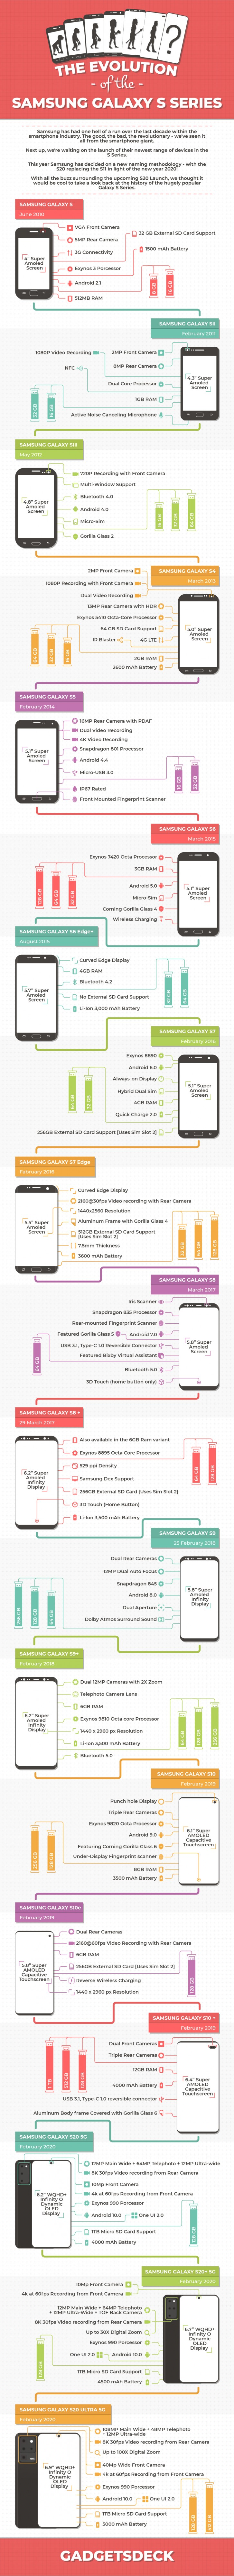 Evolution of the Samsung Galaxy S Series Flagships (Infographic)